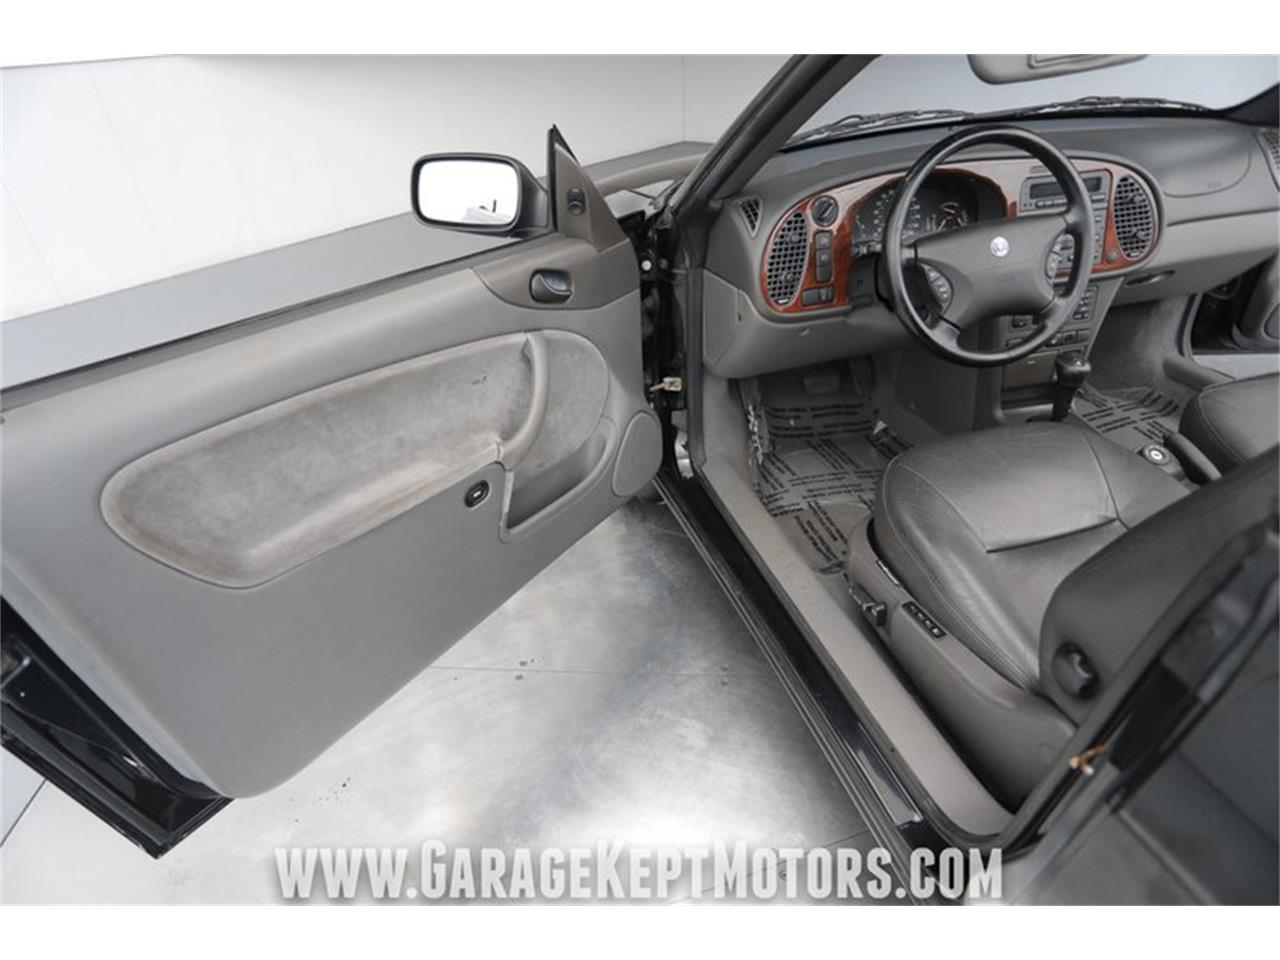 1999 Saab 9-3 for sale in Grand Rapids, MI – photo 24